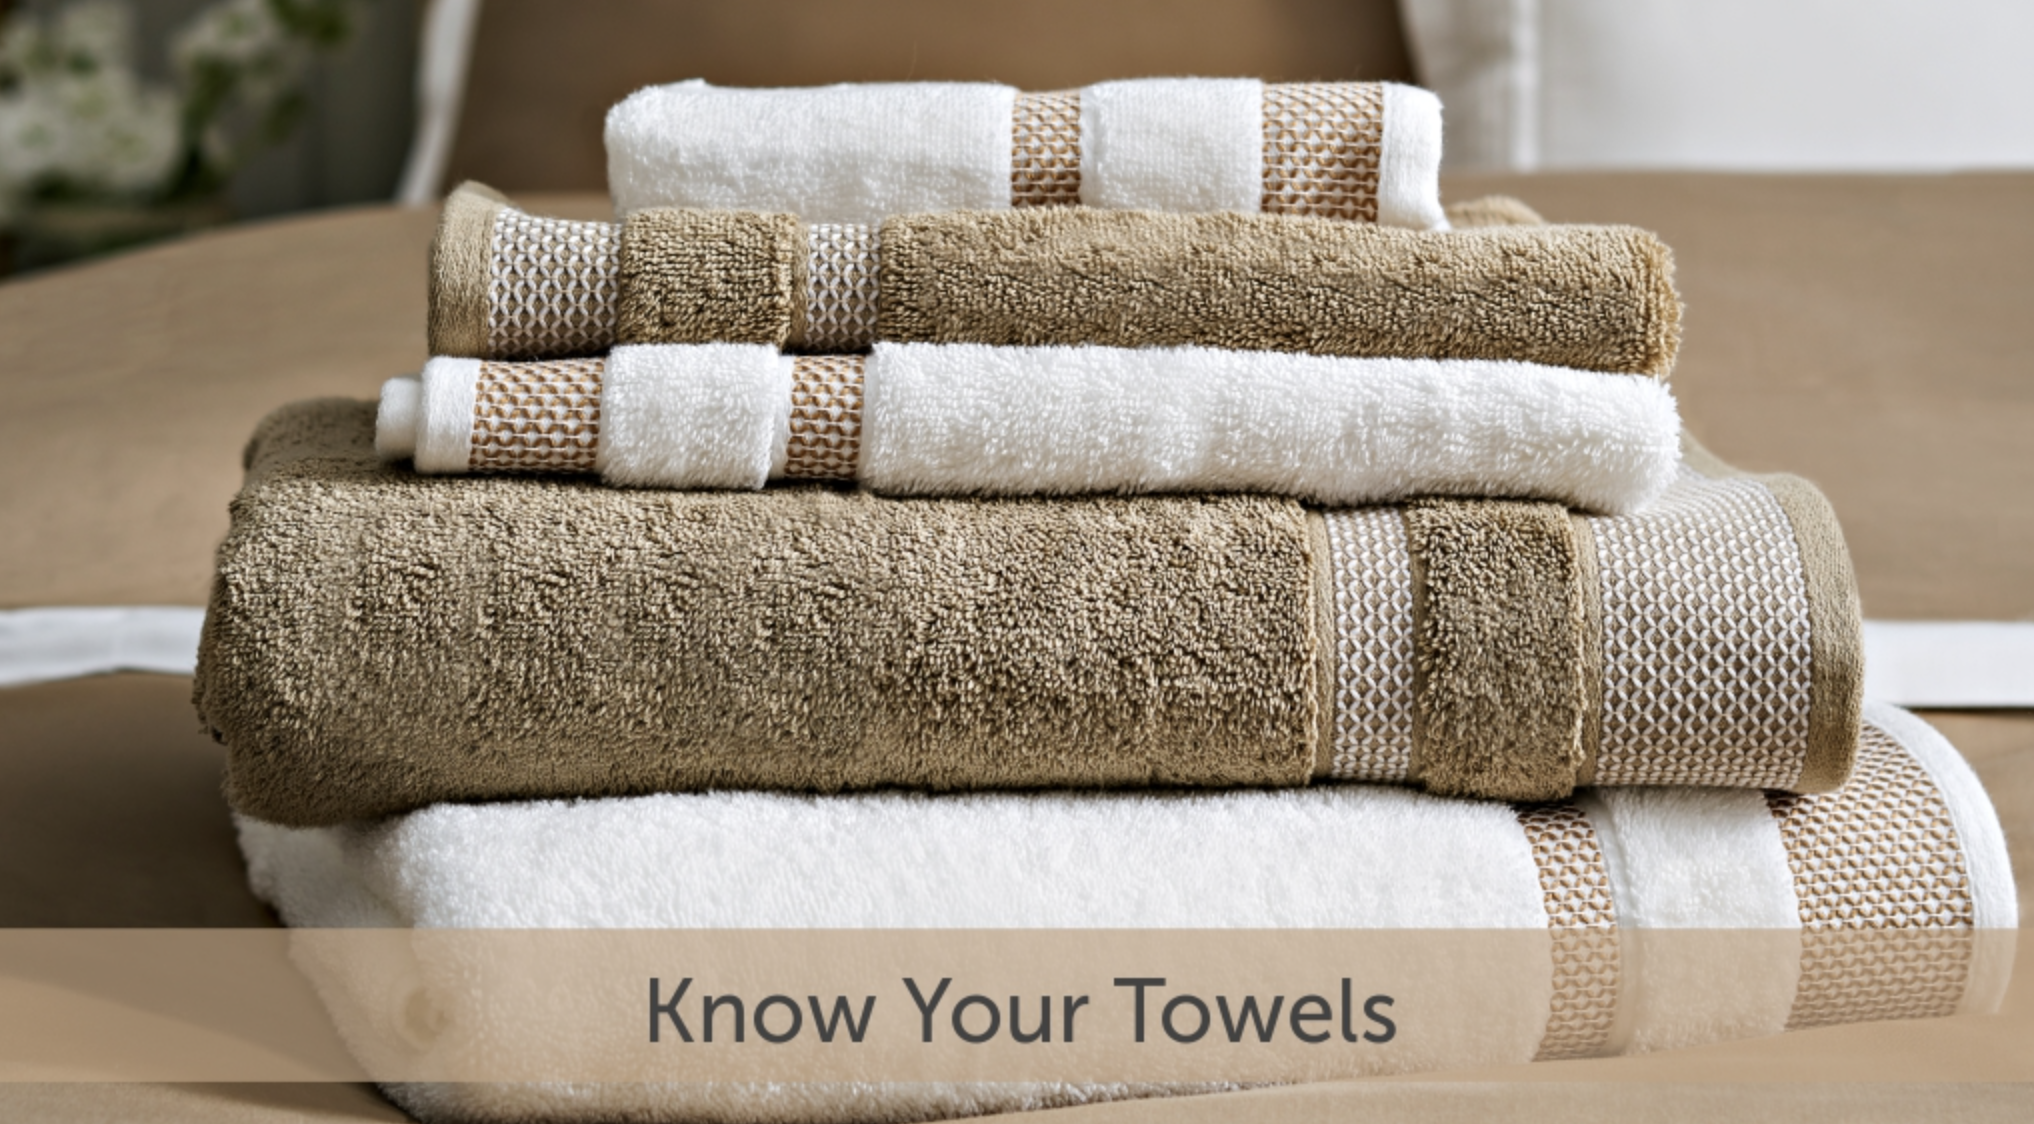 4 Reasons Why Should You Have A Variety Of Towels At The Gym